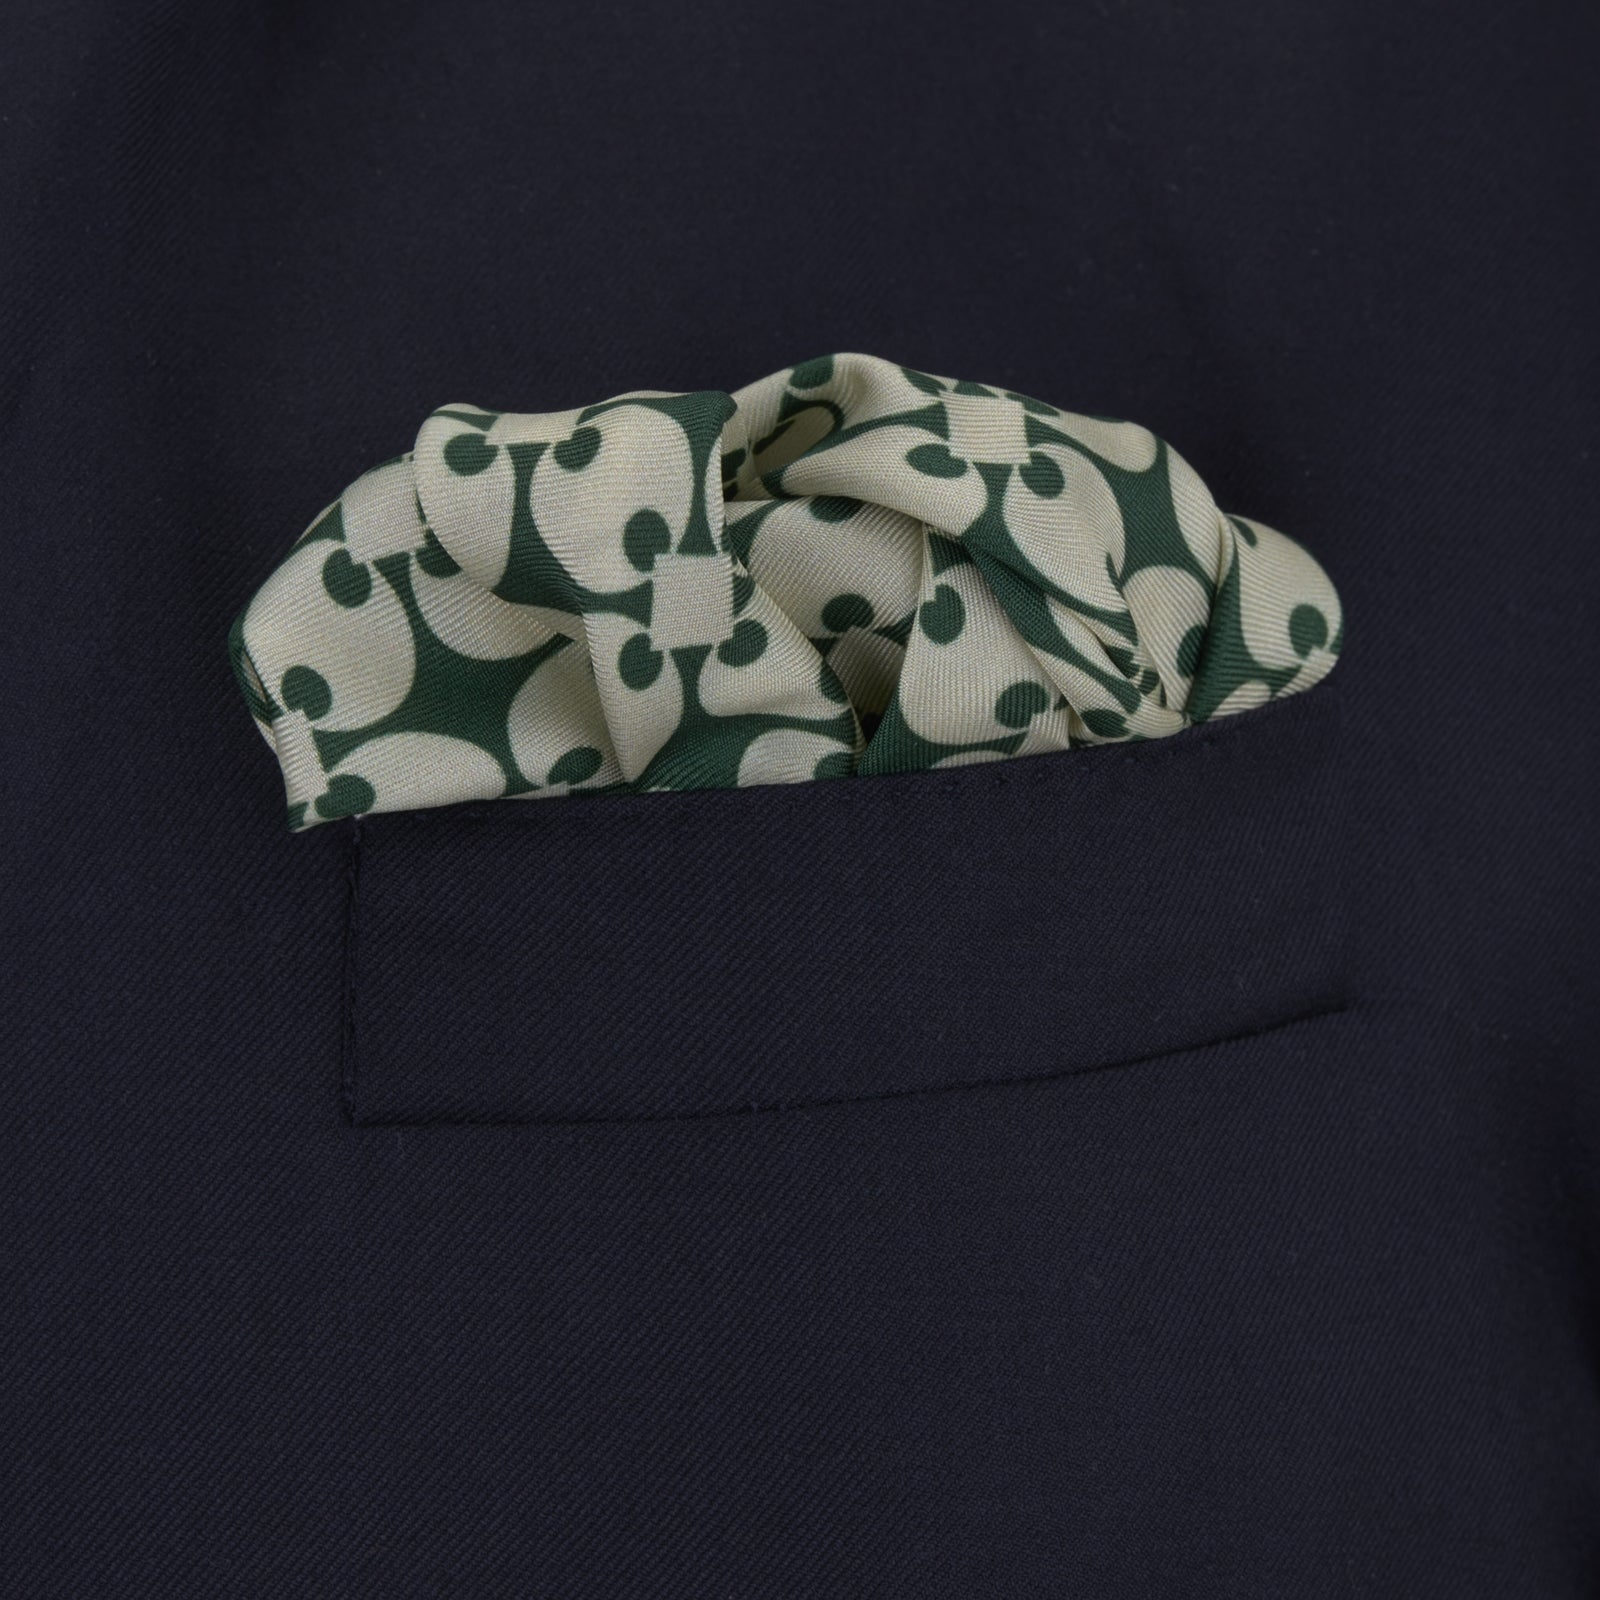 Green and White Vanguard Spot Silk Pocket Square